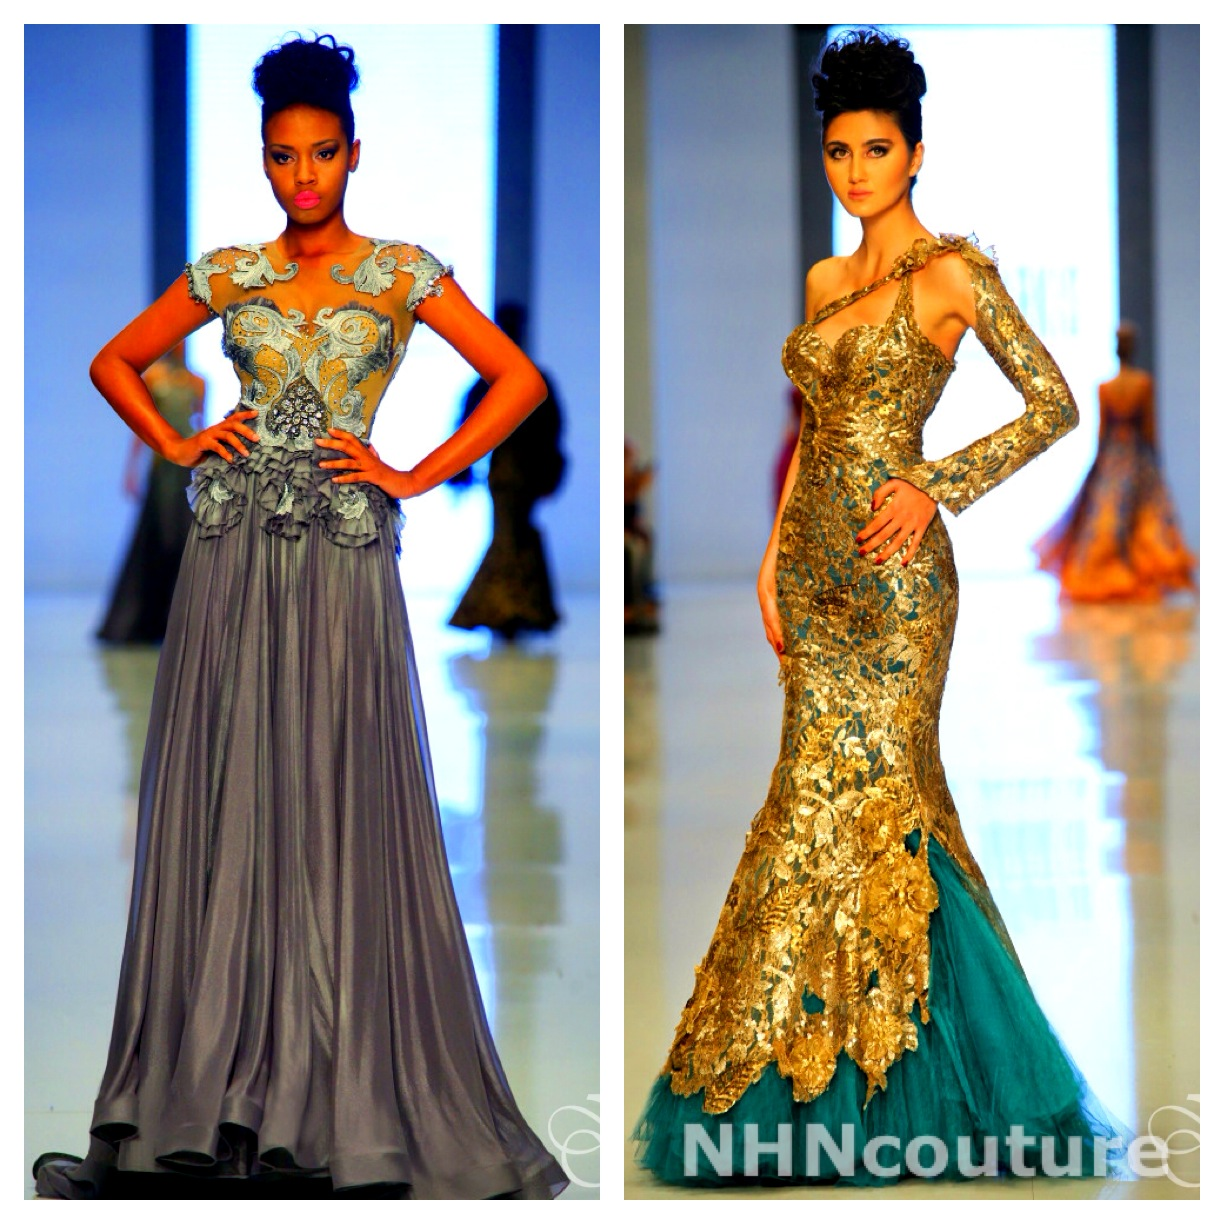 NHN Couture-Fouad Couture Nigeria 1